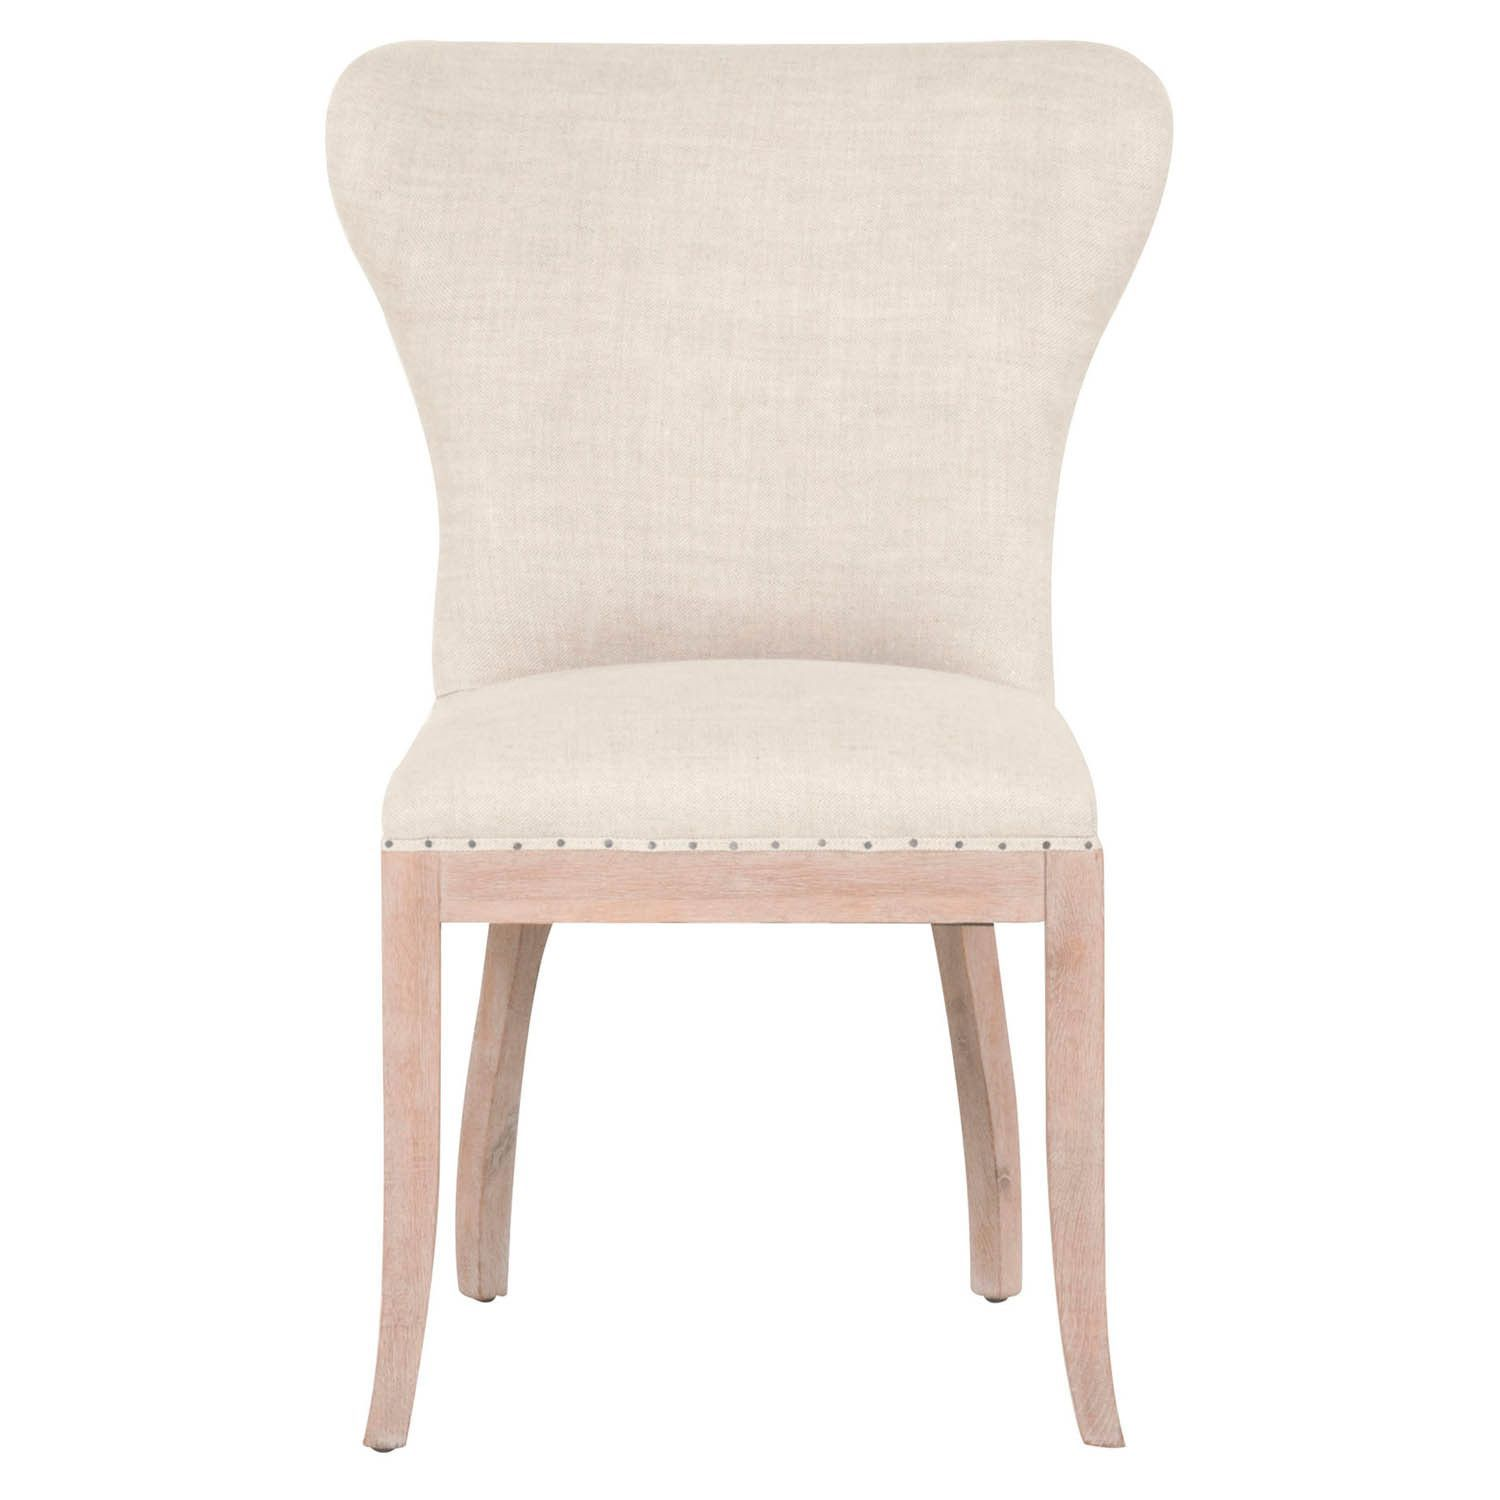 Beau Welles Dining Chair (Set Of 2) Stone Wash. Furniture ...